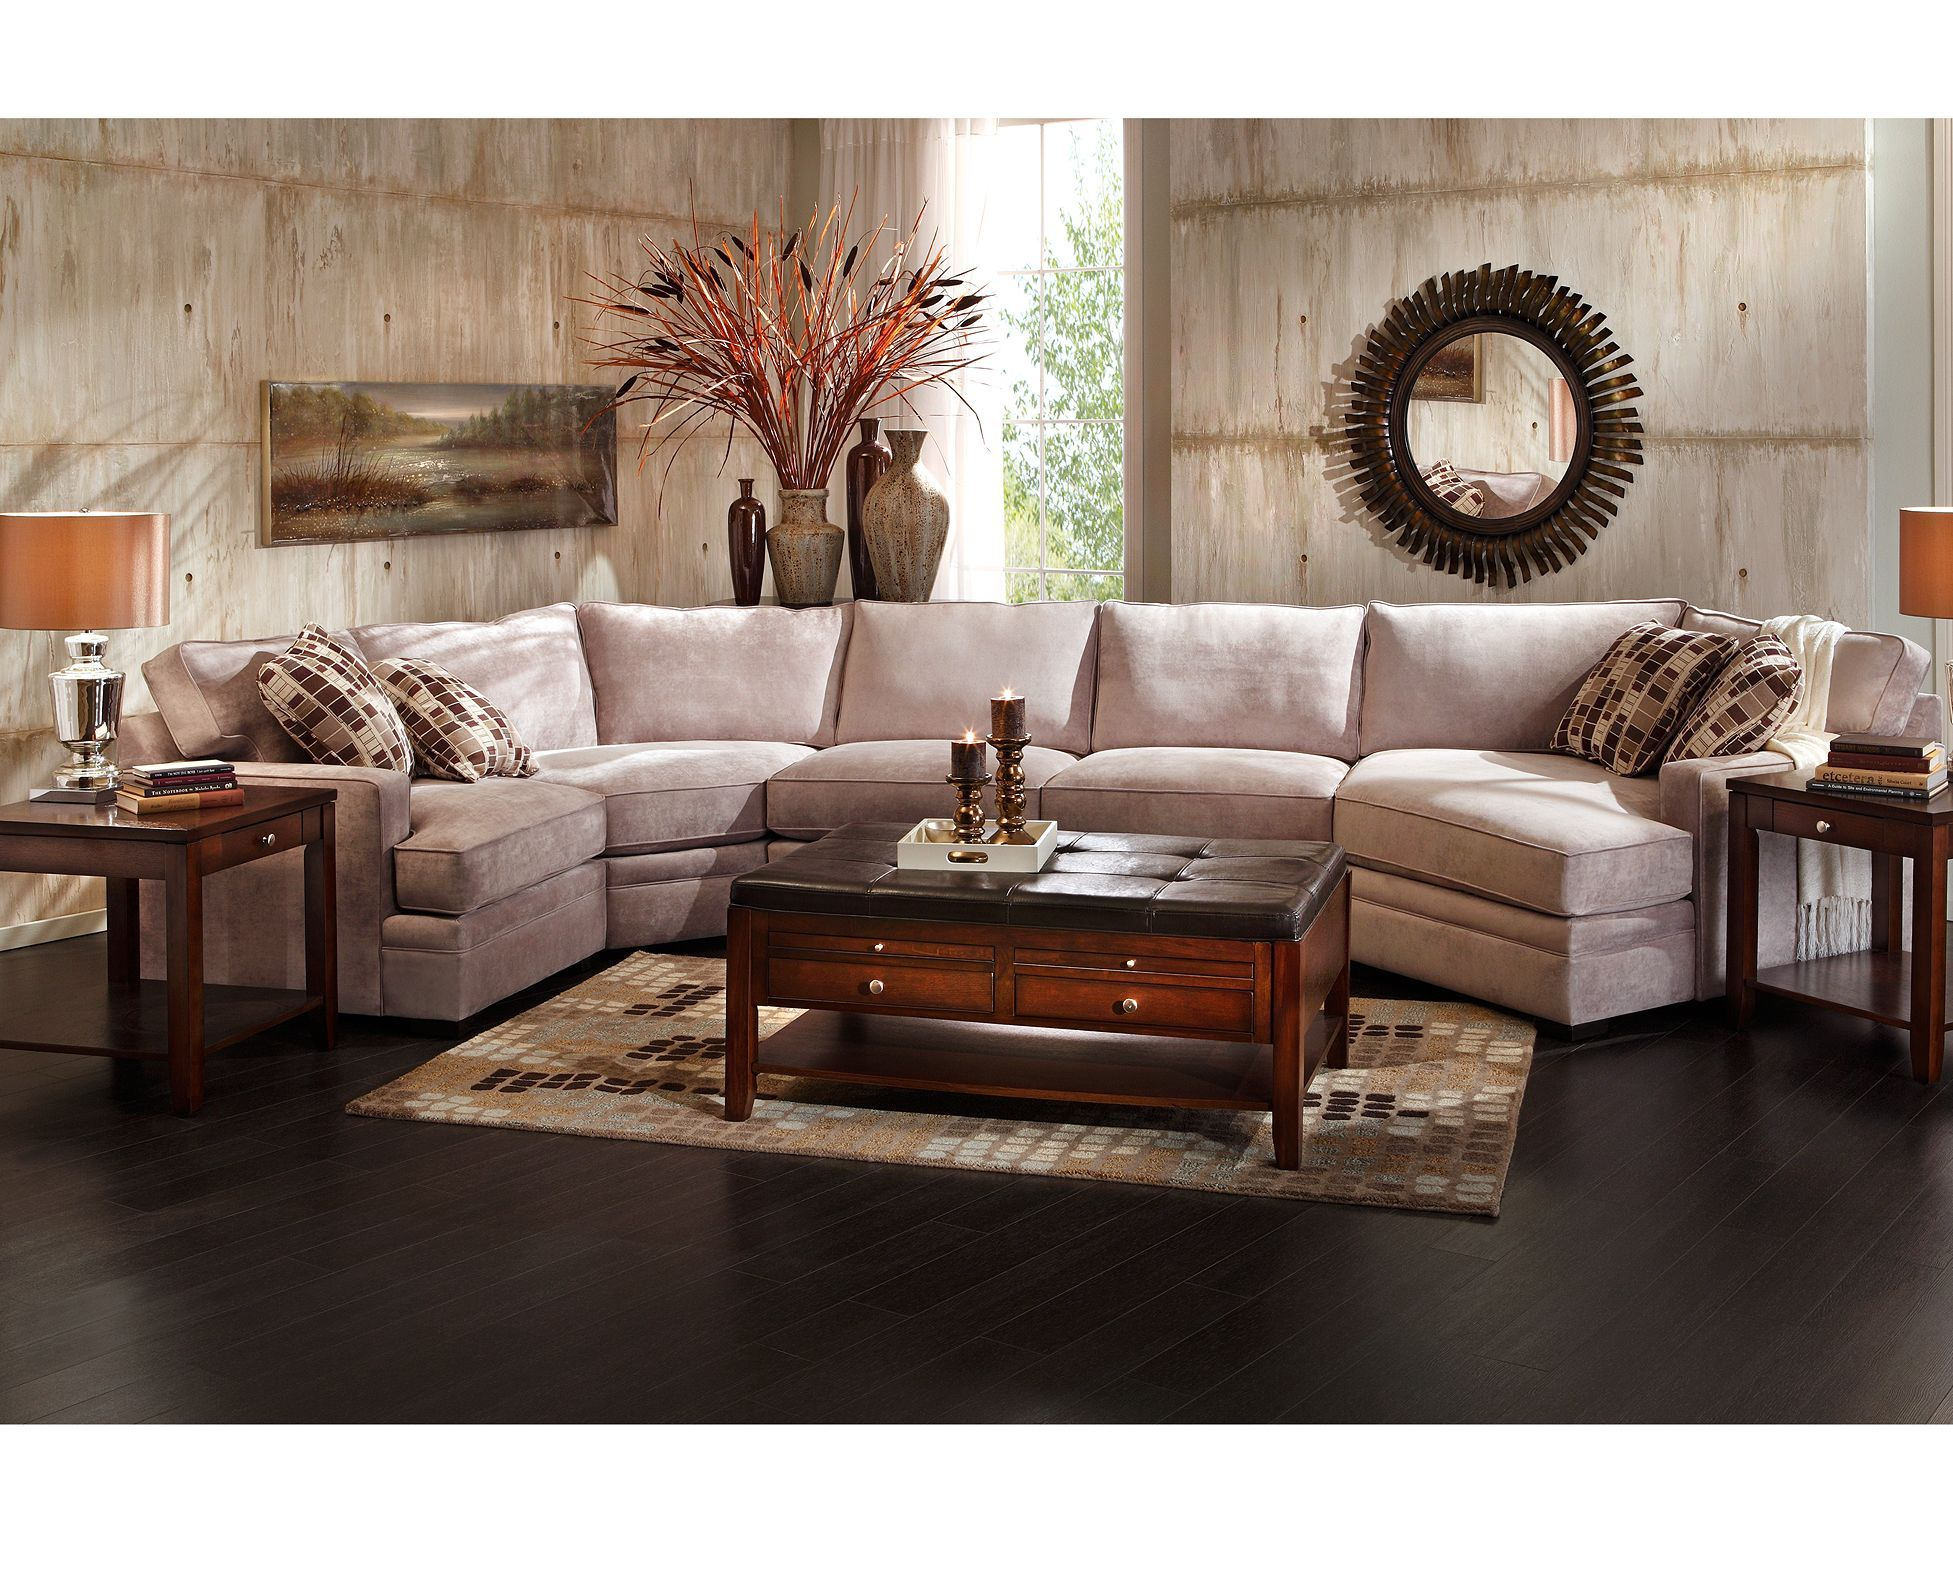 Glenwood 4 Pc. Sectional Sofa Mart 1-844-763-6278 | New ...